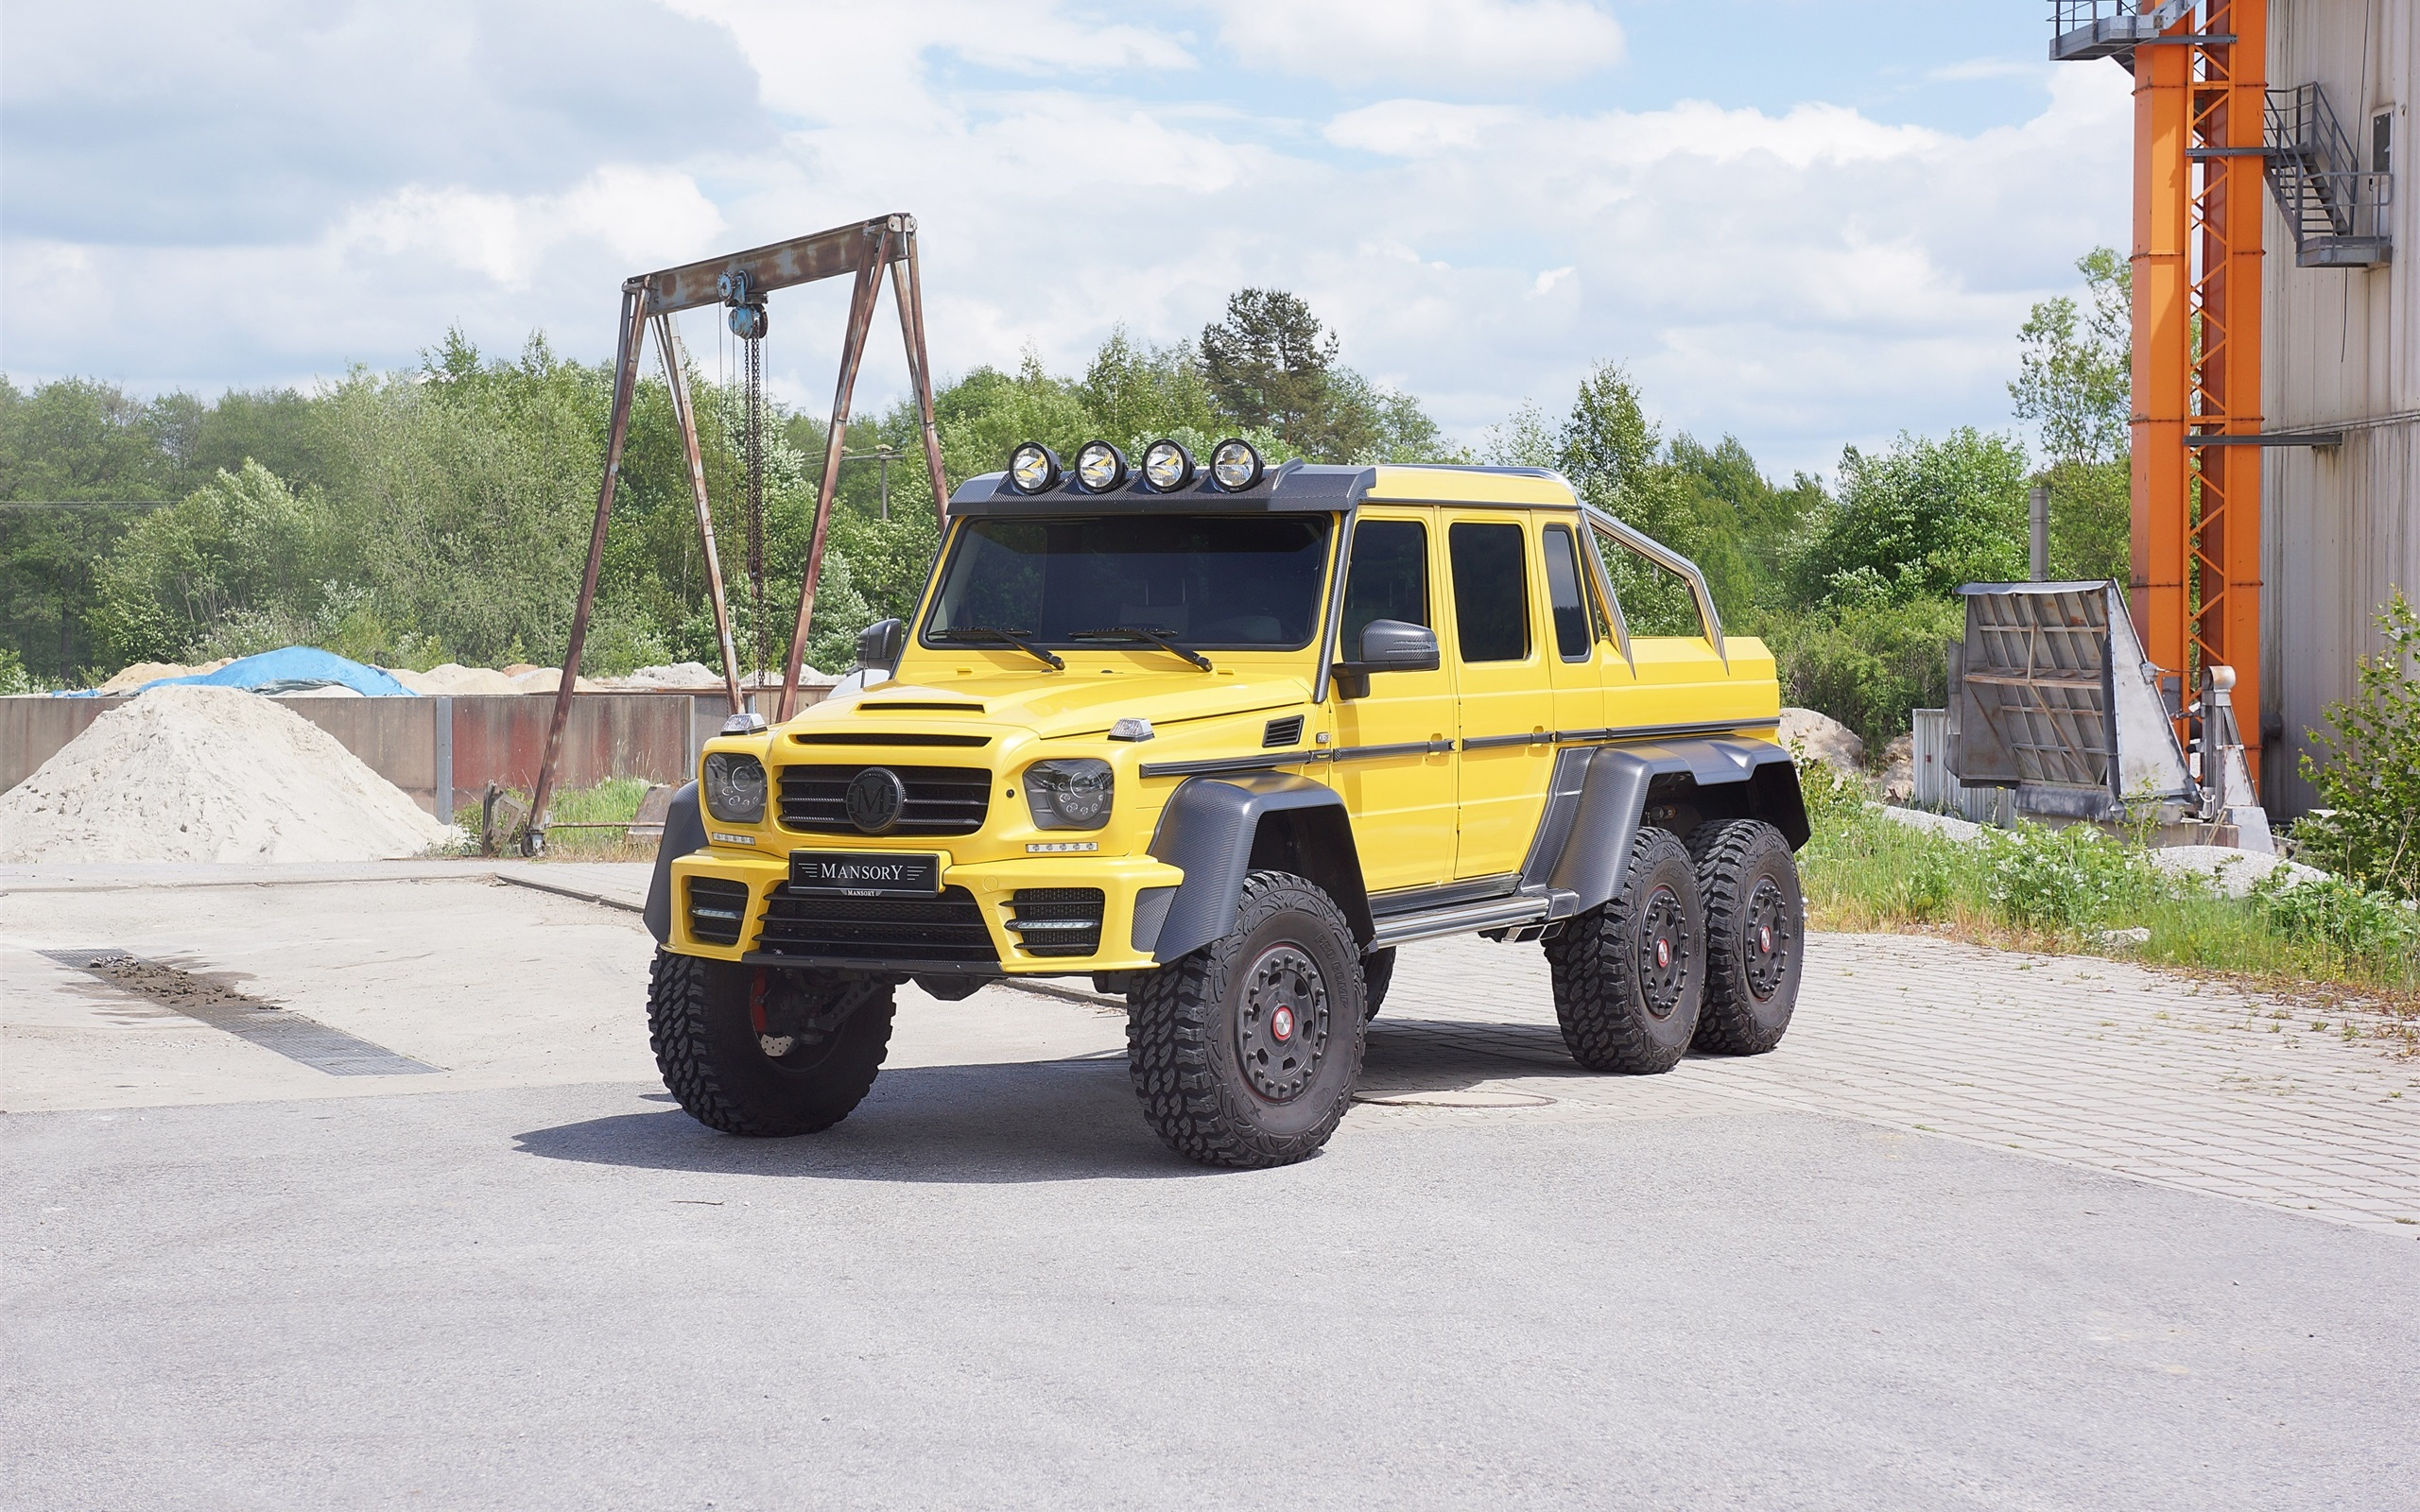 Wallpaper 2015 Mercedes Benz G63 Amg 6x6 Yellow Car 2560x1600 Hd Picture Image